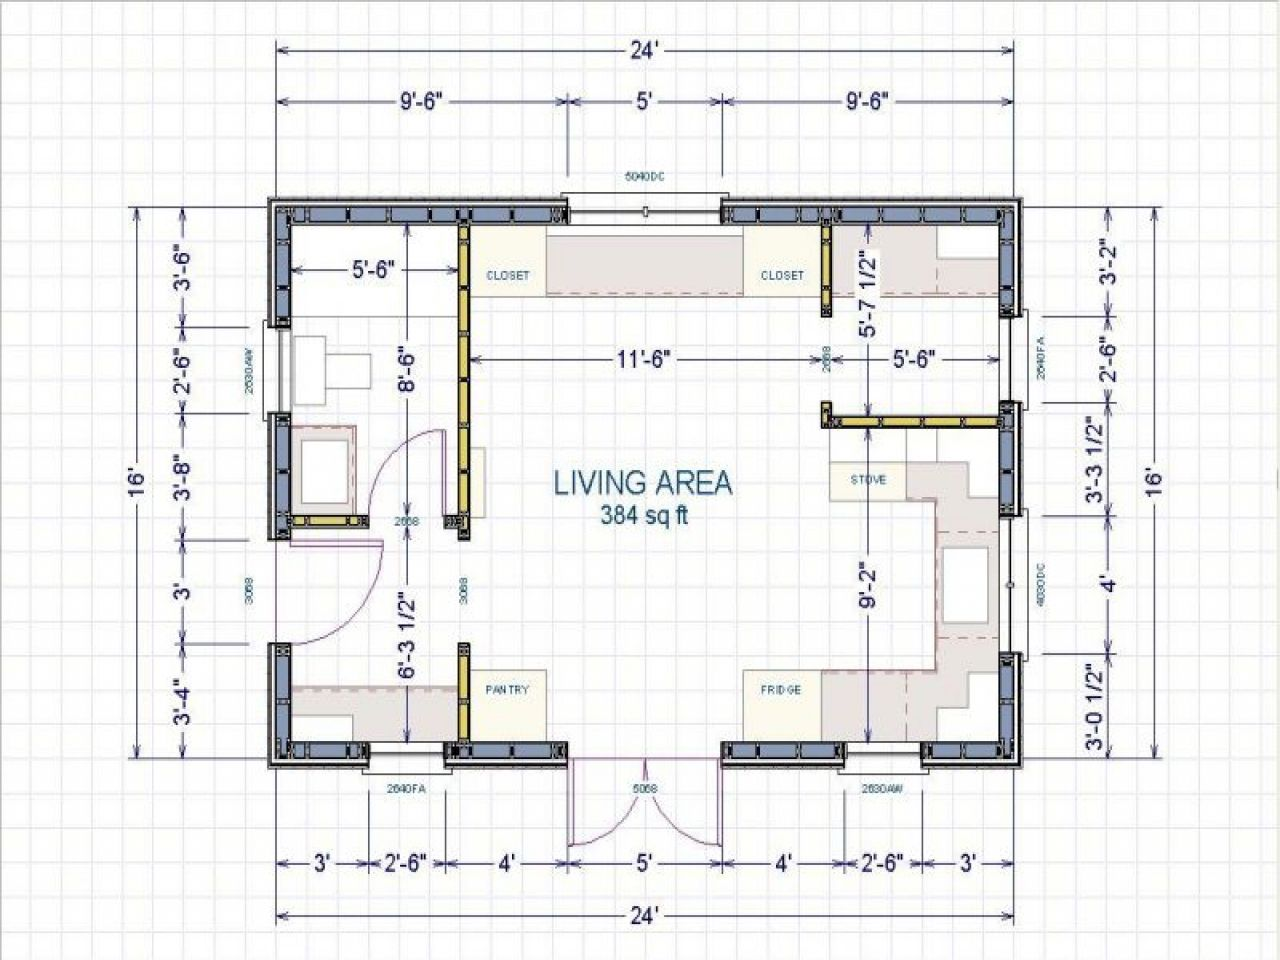 image result for 16 x 24 cabin floor plans - Cabin Floor Plans